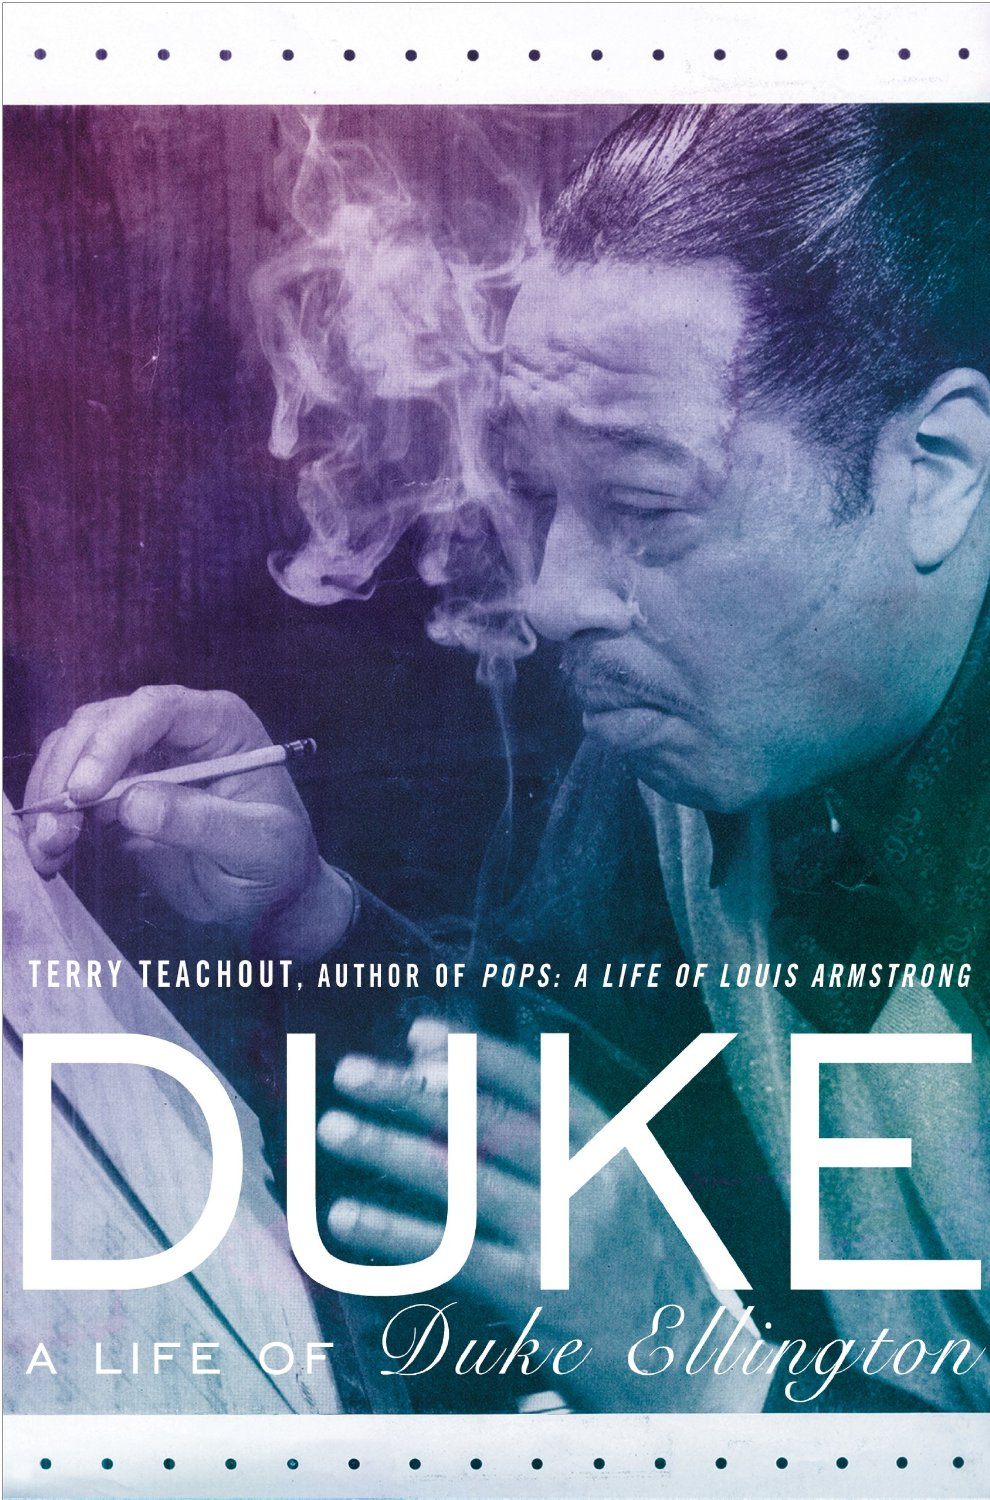 a biography of the life and times of duke ellington Latest headlines jacob tremblay to star in comedy 'good boys' for universal 7 hours ago | variety - film news ione skye joins lena dunham's 'camping' at hbo.